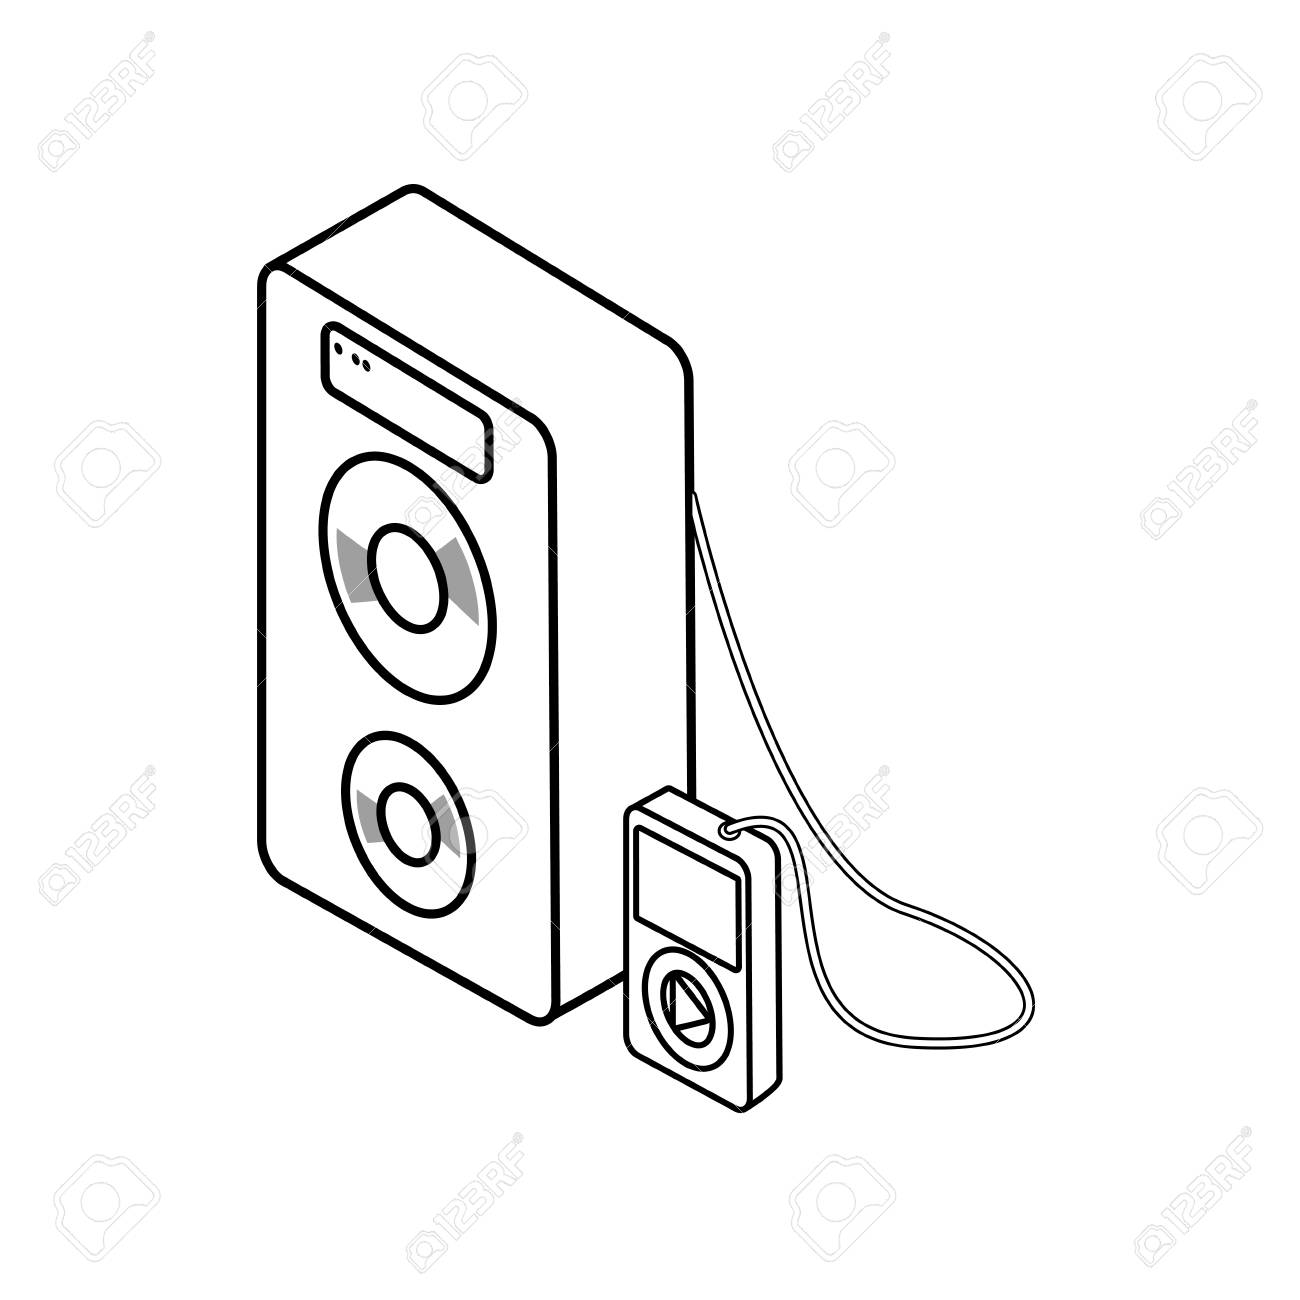 music player device with portable speaker icon over white background